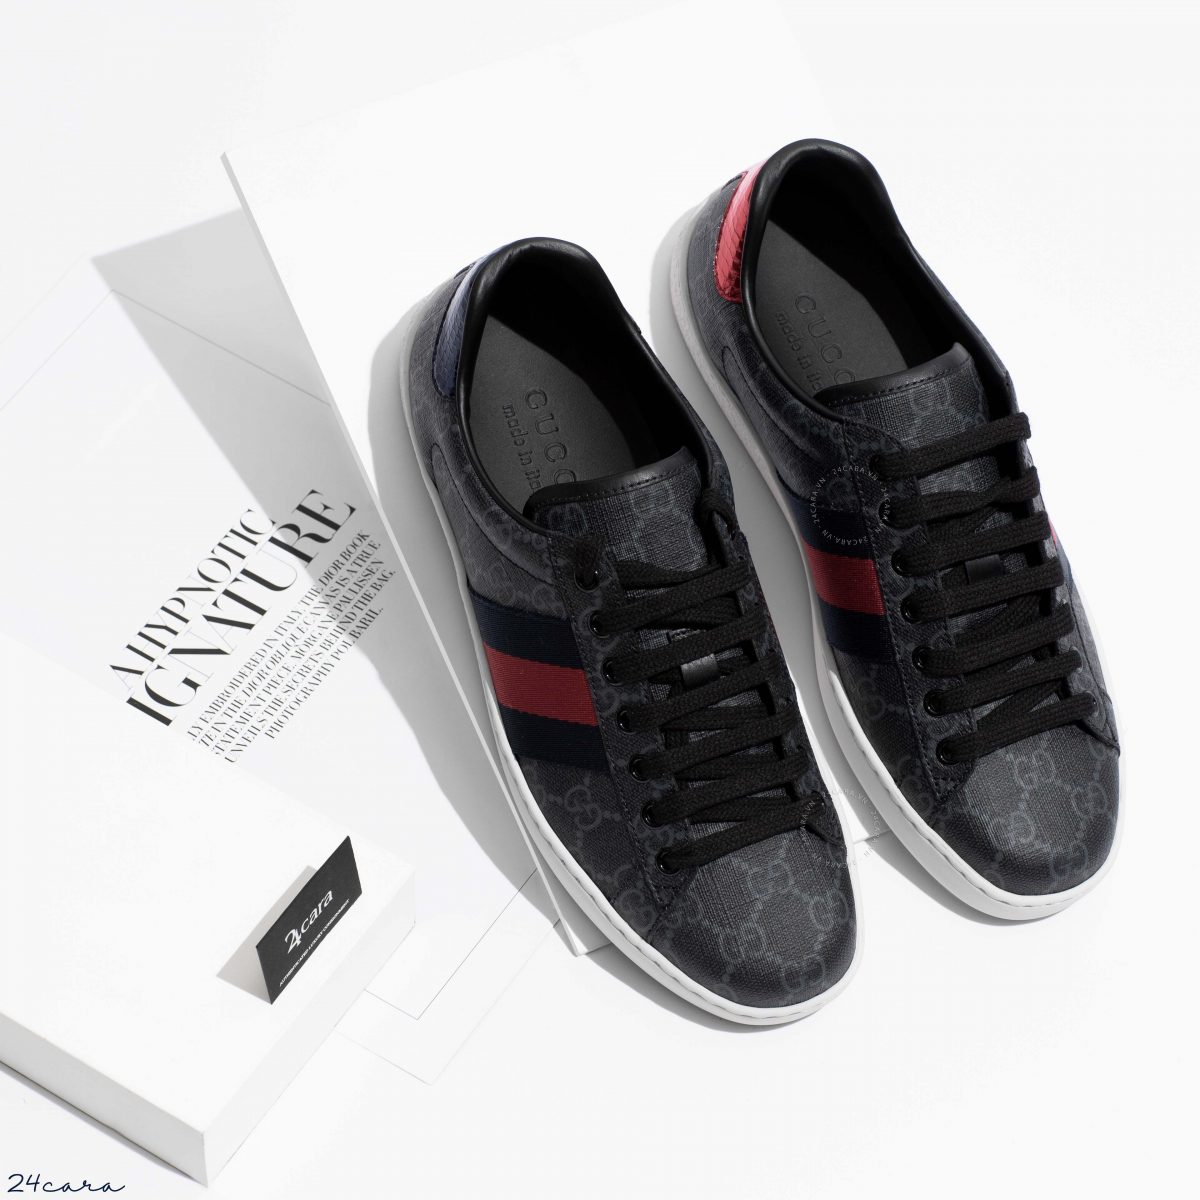 GUCCI GG BLACK SUPREME LOW TOP WITH WEB SNEAKERS